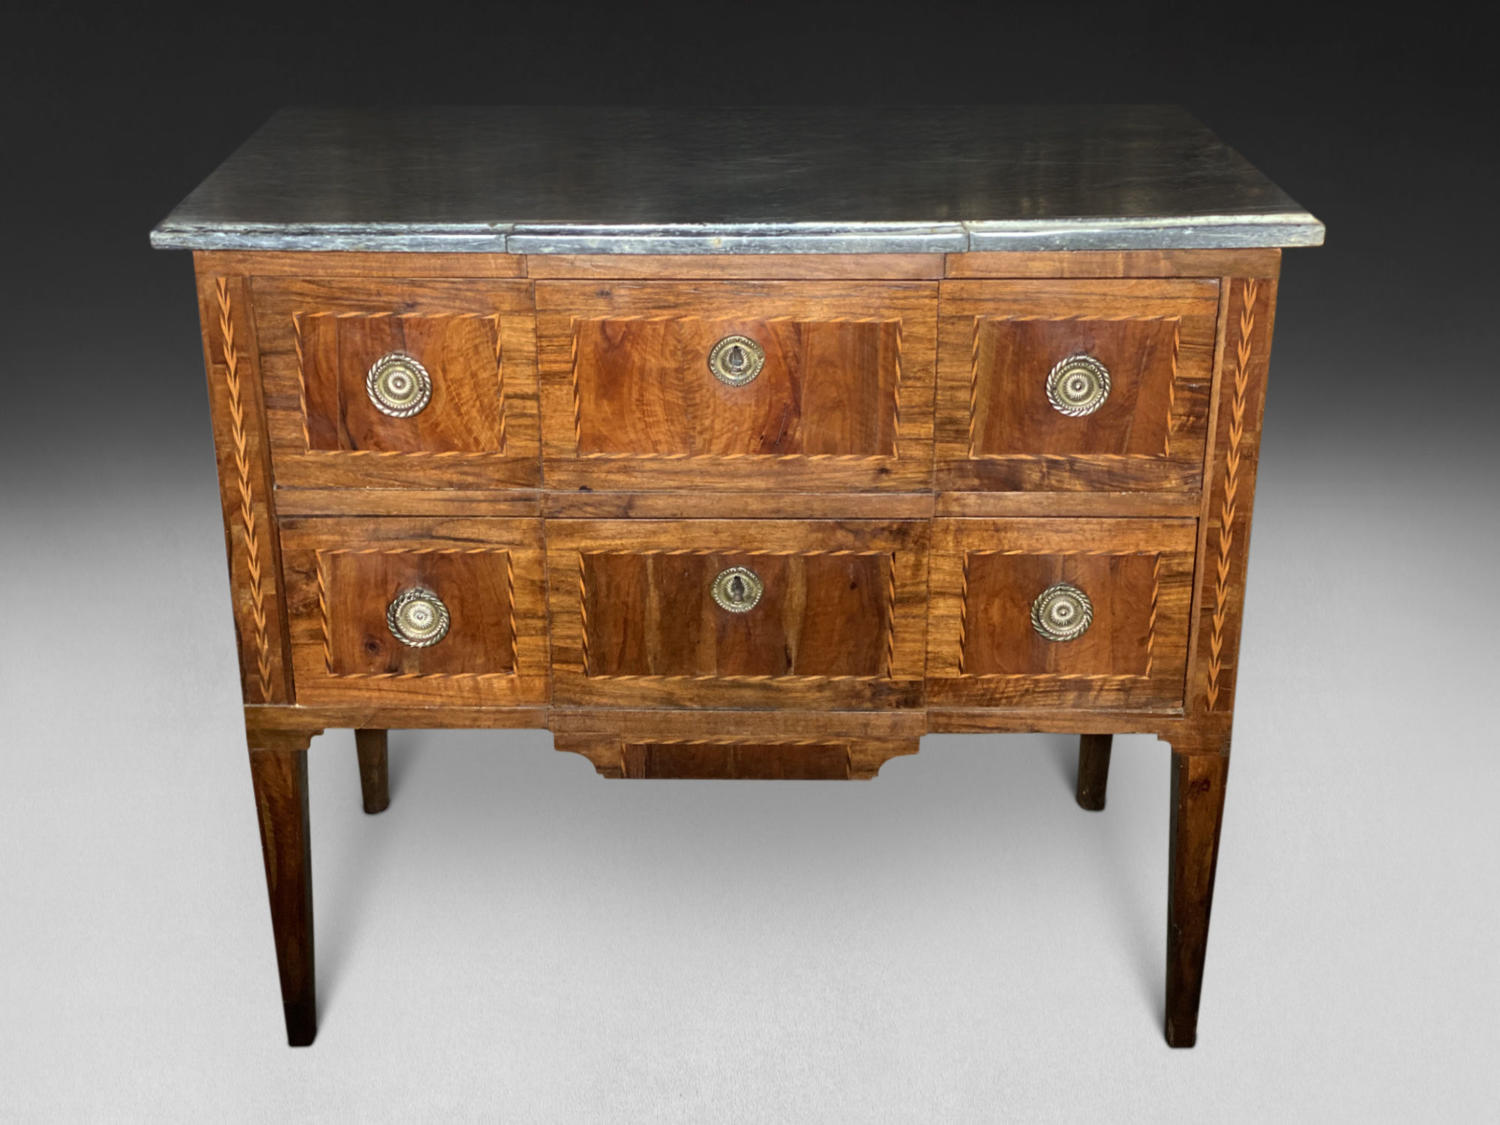 A PARQUETRY INLAID WALNUT COMMODE